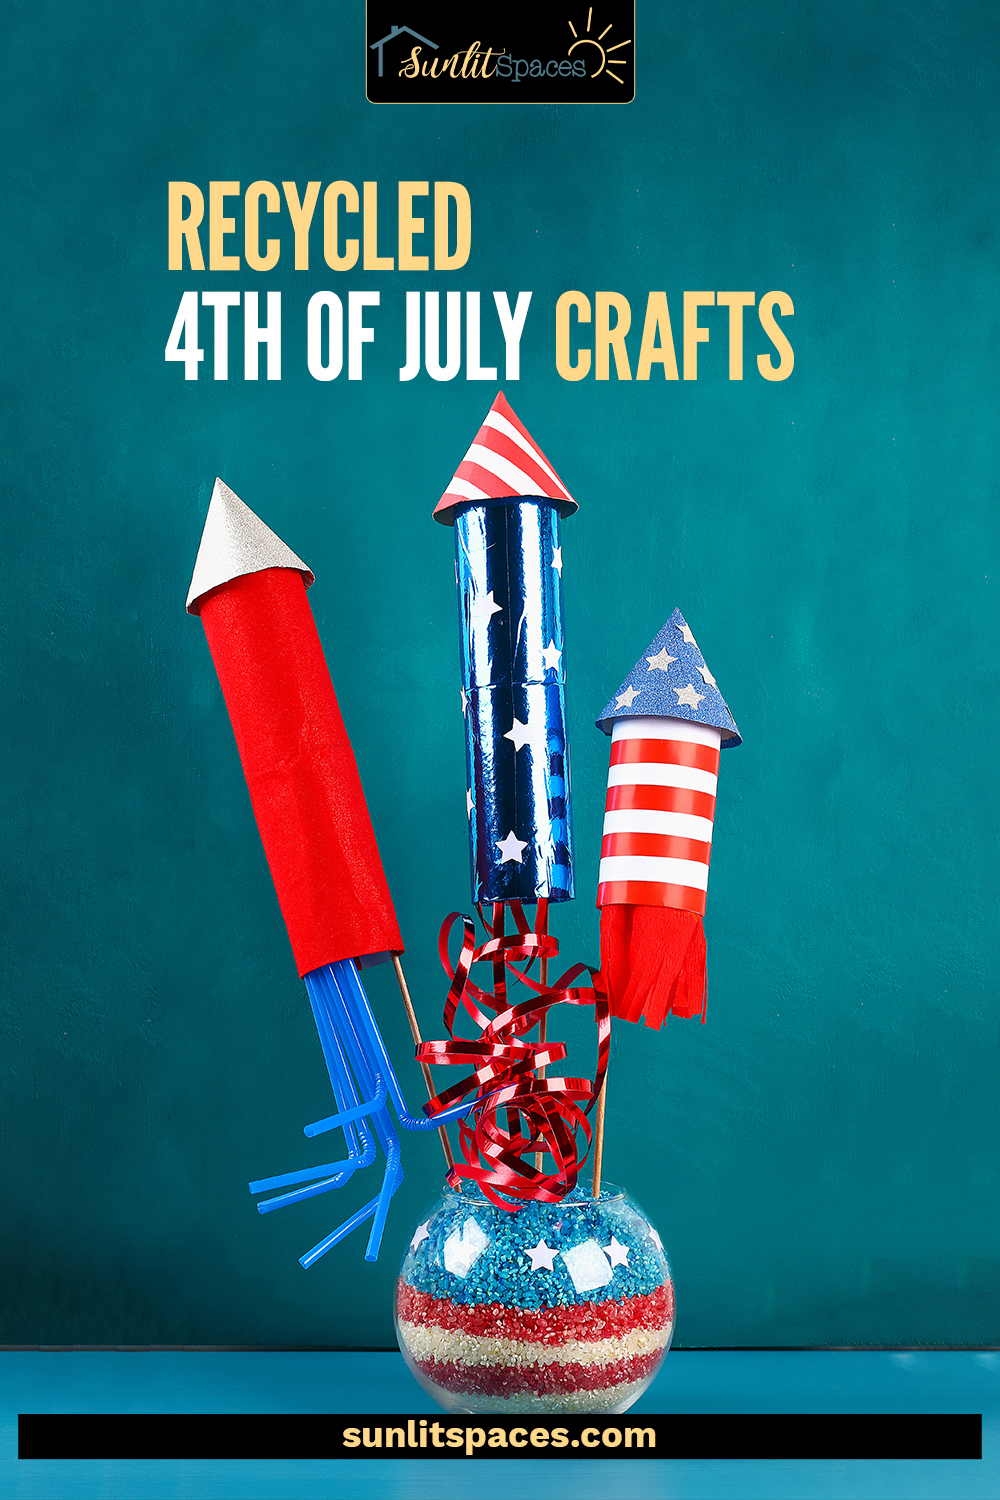 Do you enjoy 4th of July craft projects? Don't miss these fun recycled 4th of July crafts! There's a project for old books, tin cans, mason jars, and even window frames. #sunlitspacesblog #recycled4thofjulycrafts #DIY4thofjulycrafts